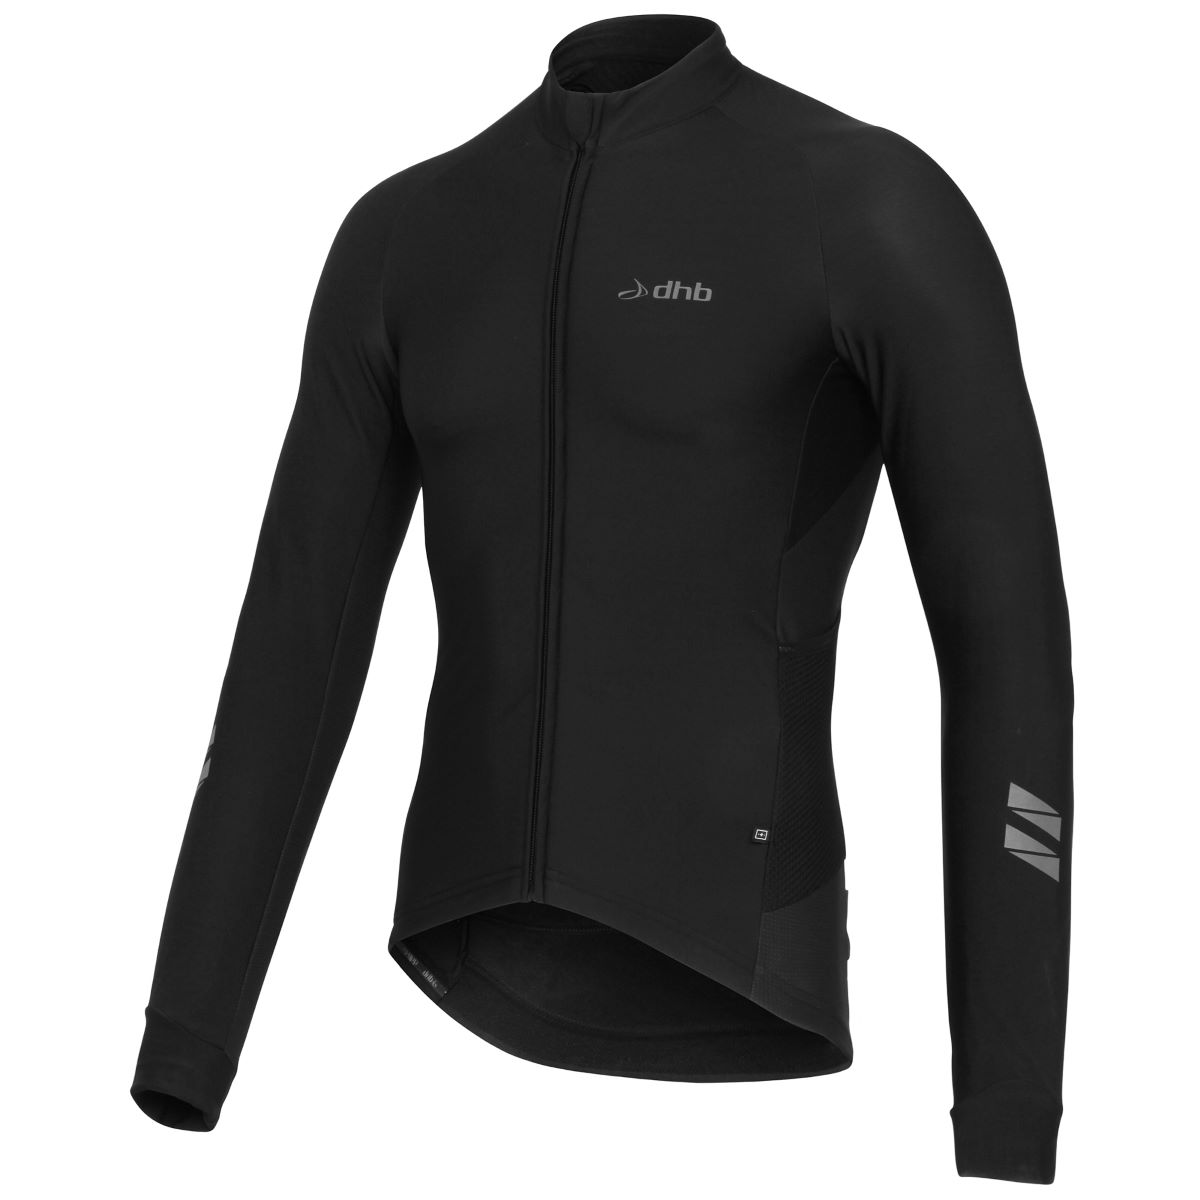 dhb ASV Roubaix Long Sleeve Jersey Black Edition